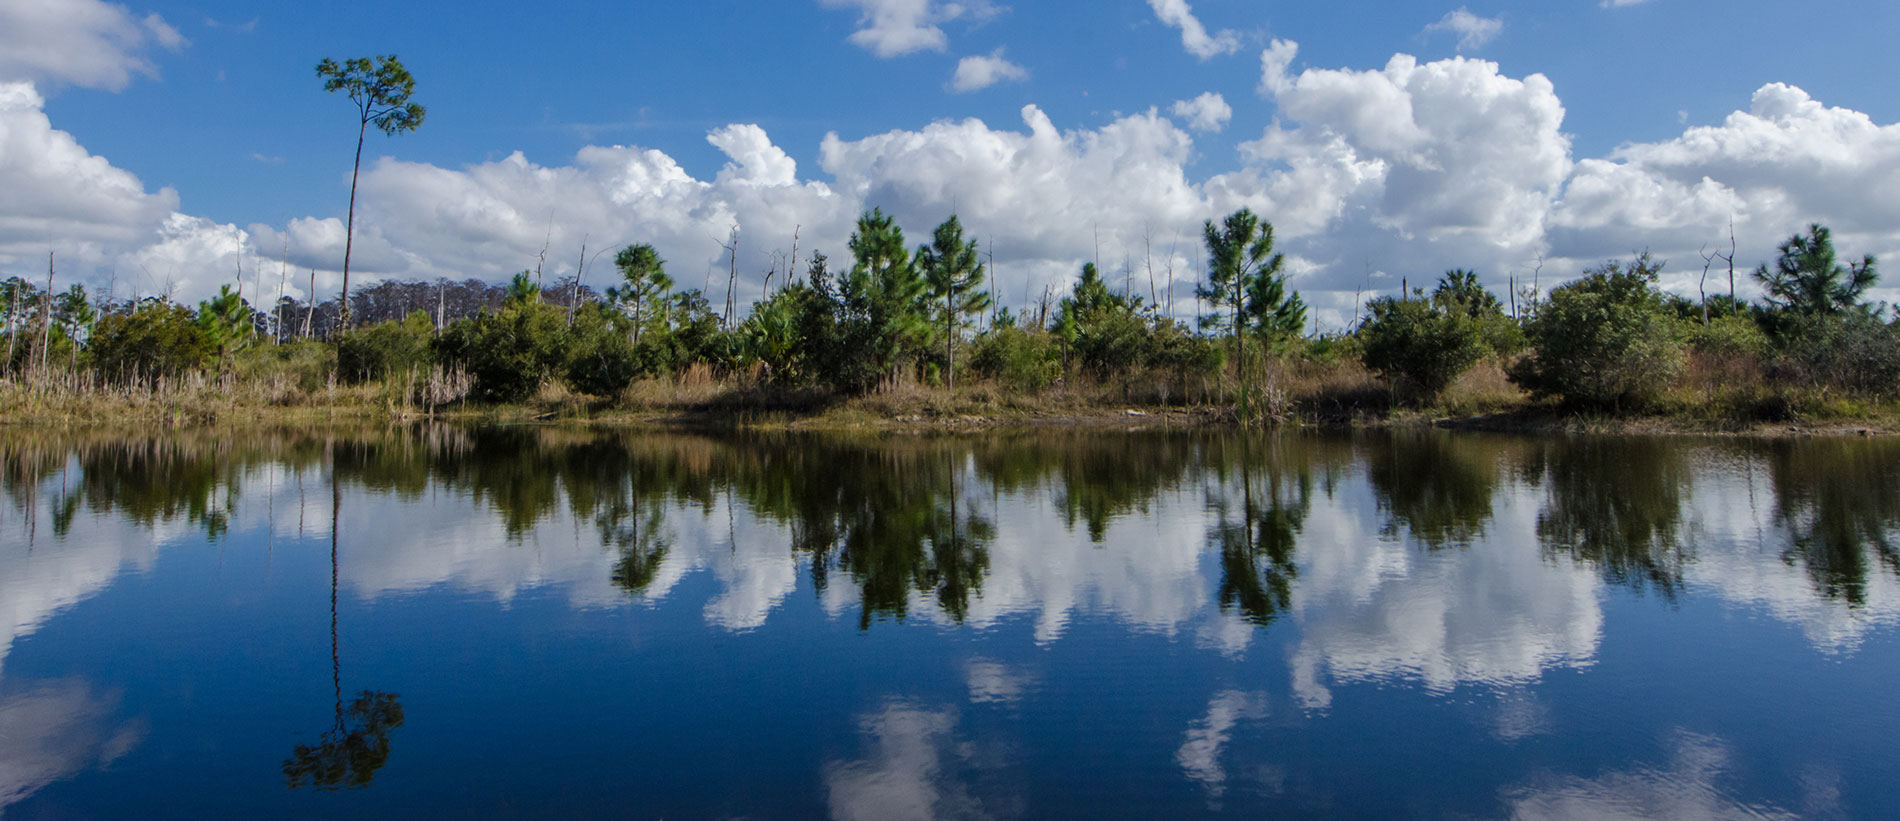 This is a photo of wetlands